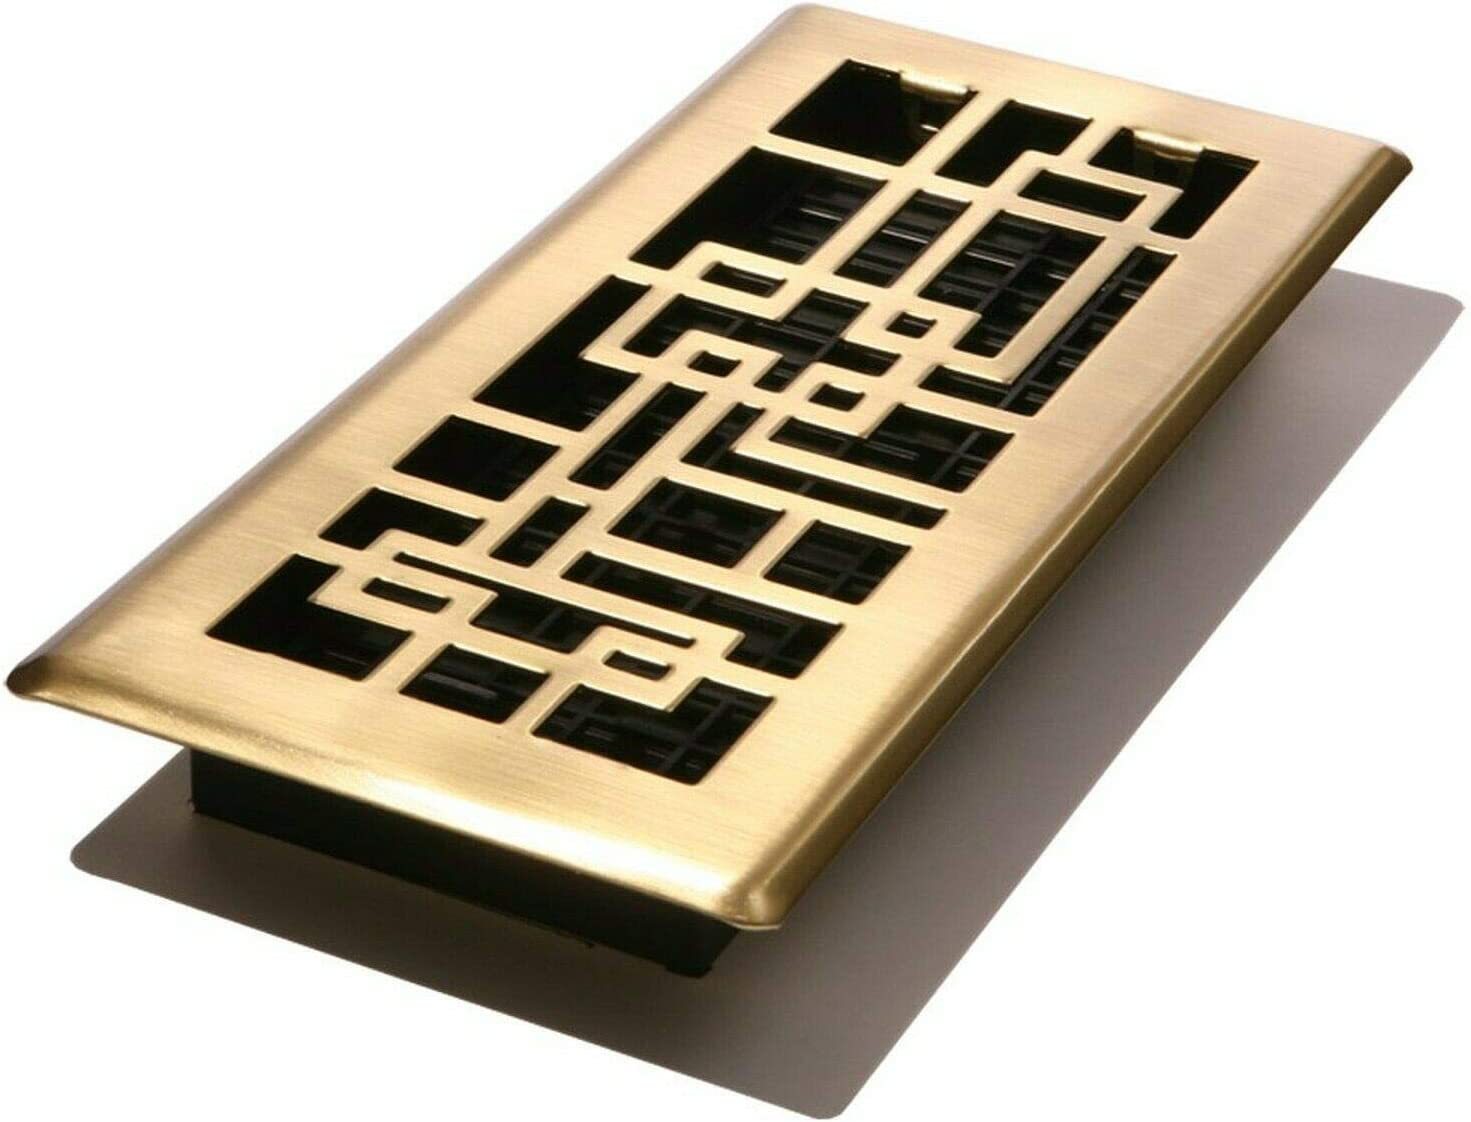 Decor Grates ABH410-SB Abstract Floor Register, Satin Brass Finish, 4-Inch by 10-Inch